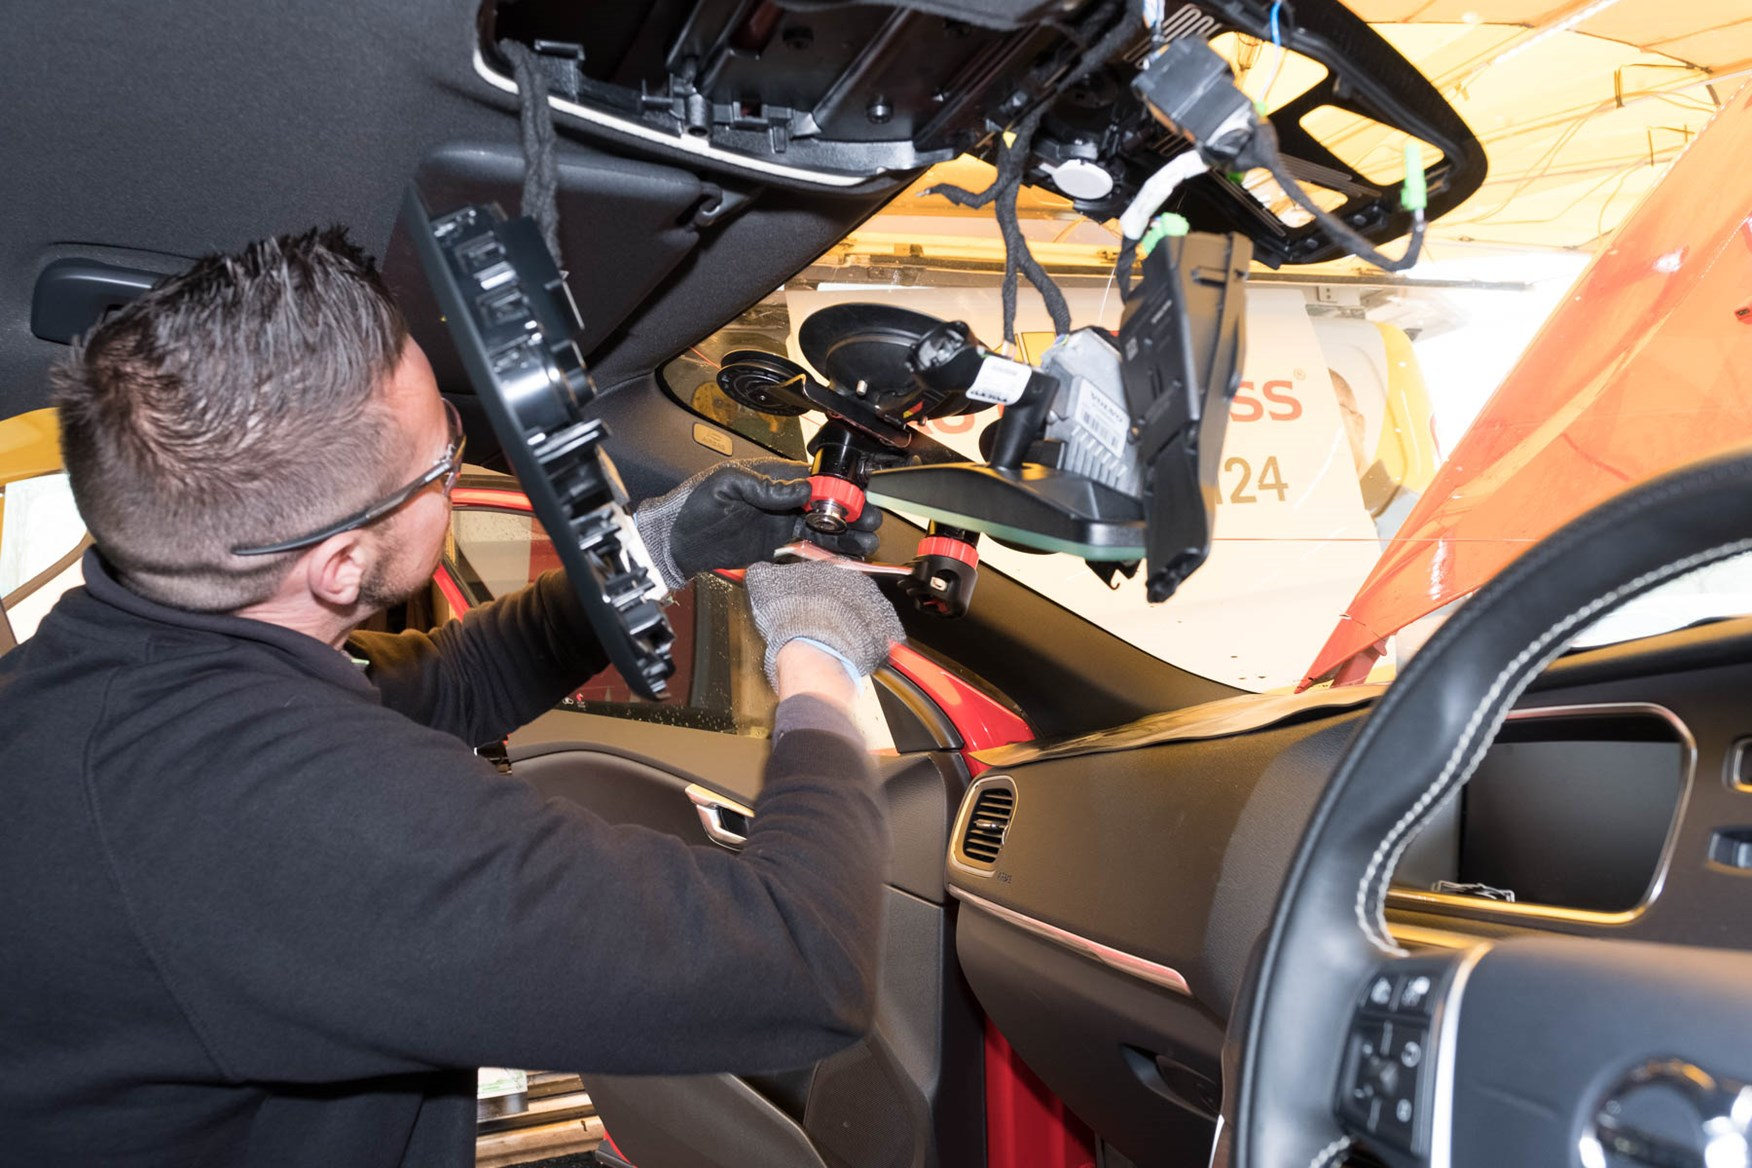 An impressive device applies torque to a thin plastic-coated string around the windscreen to cut through the seal